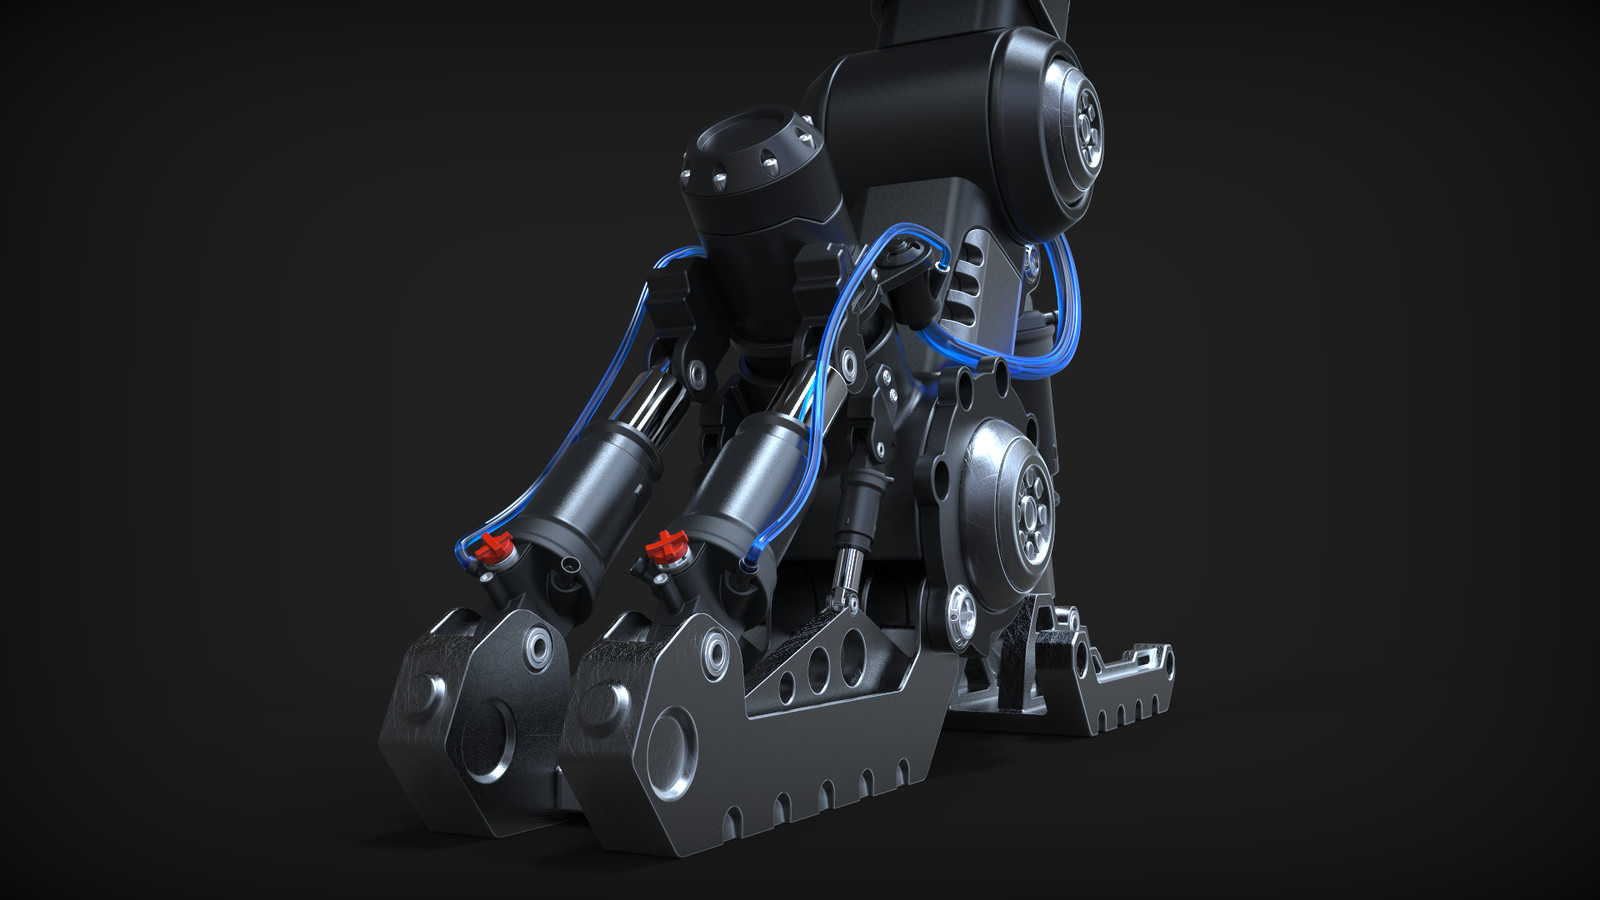 The Reaper - Hardsurface Landing Gear